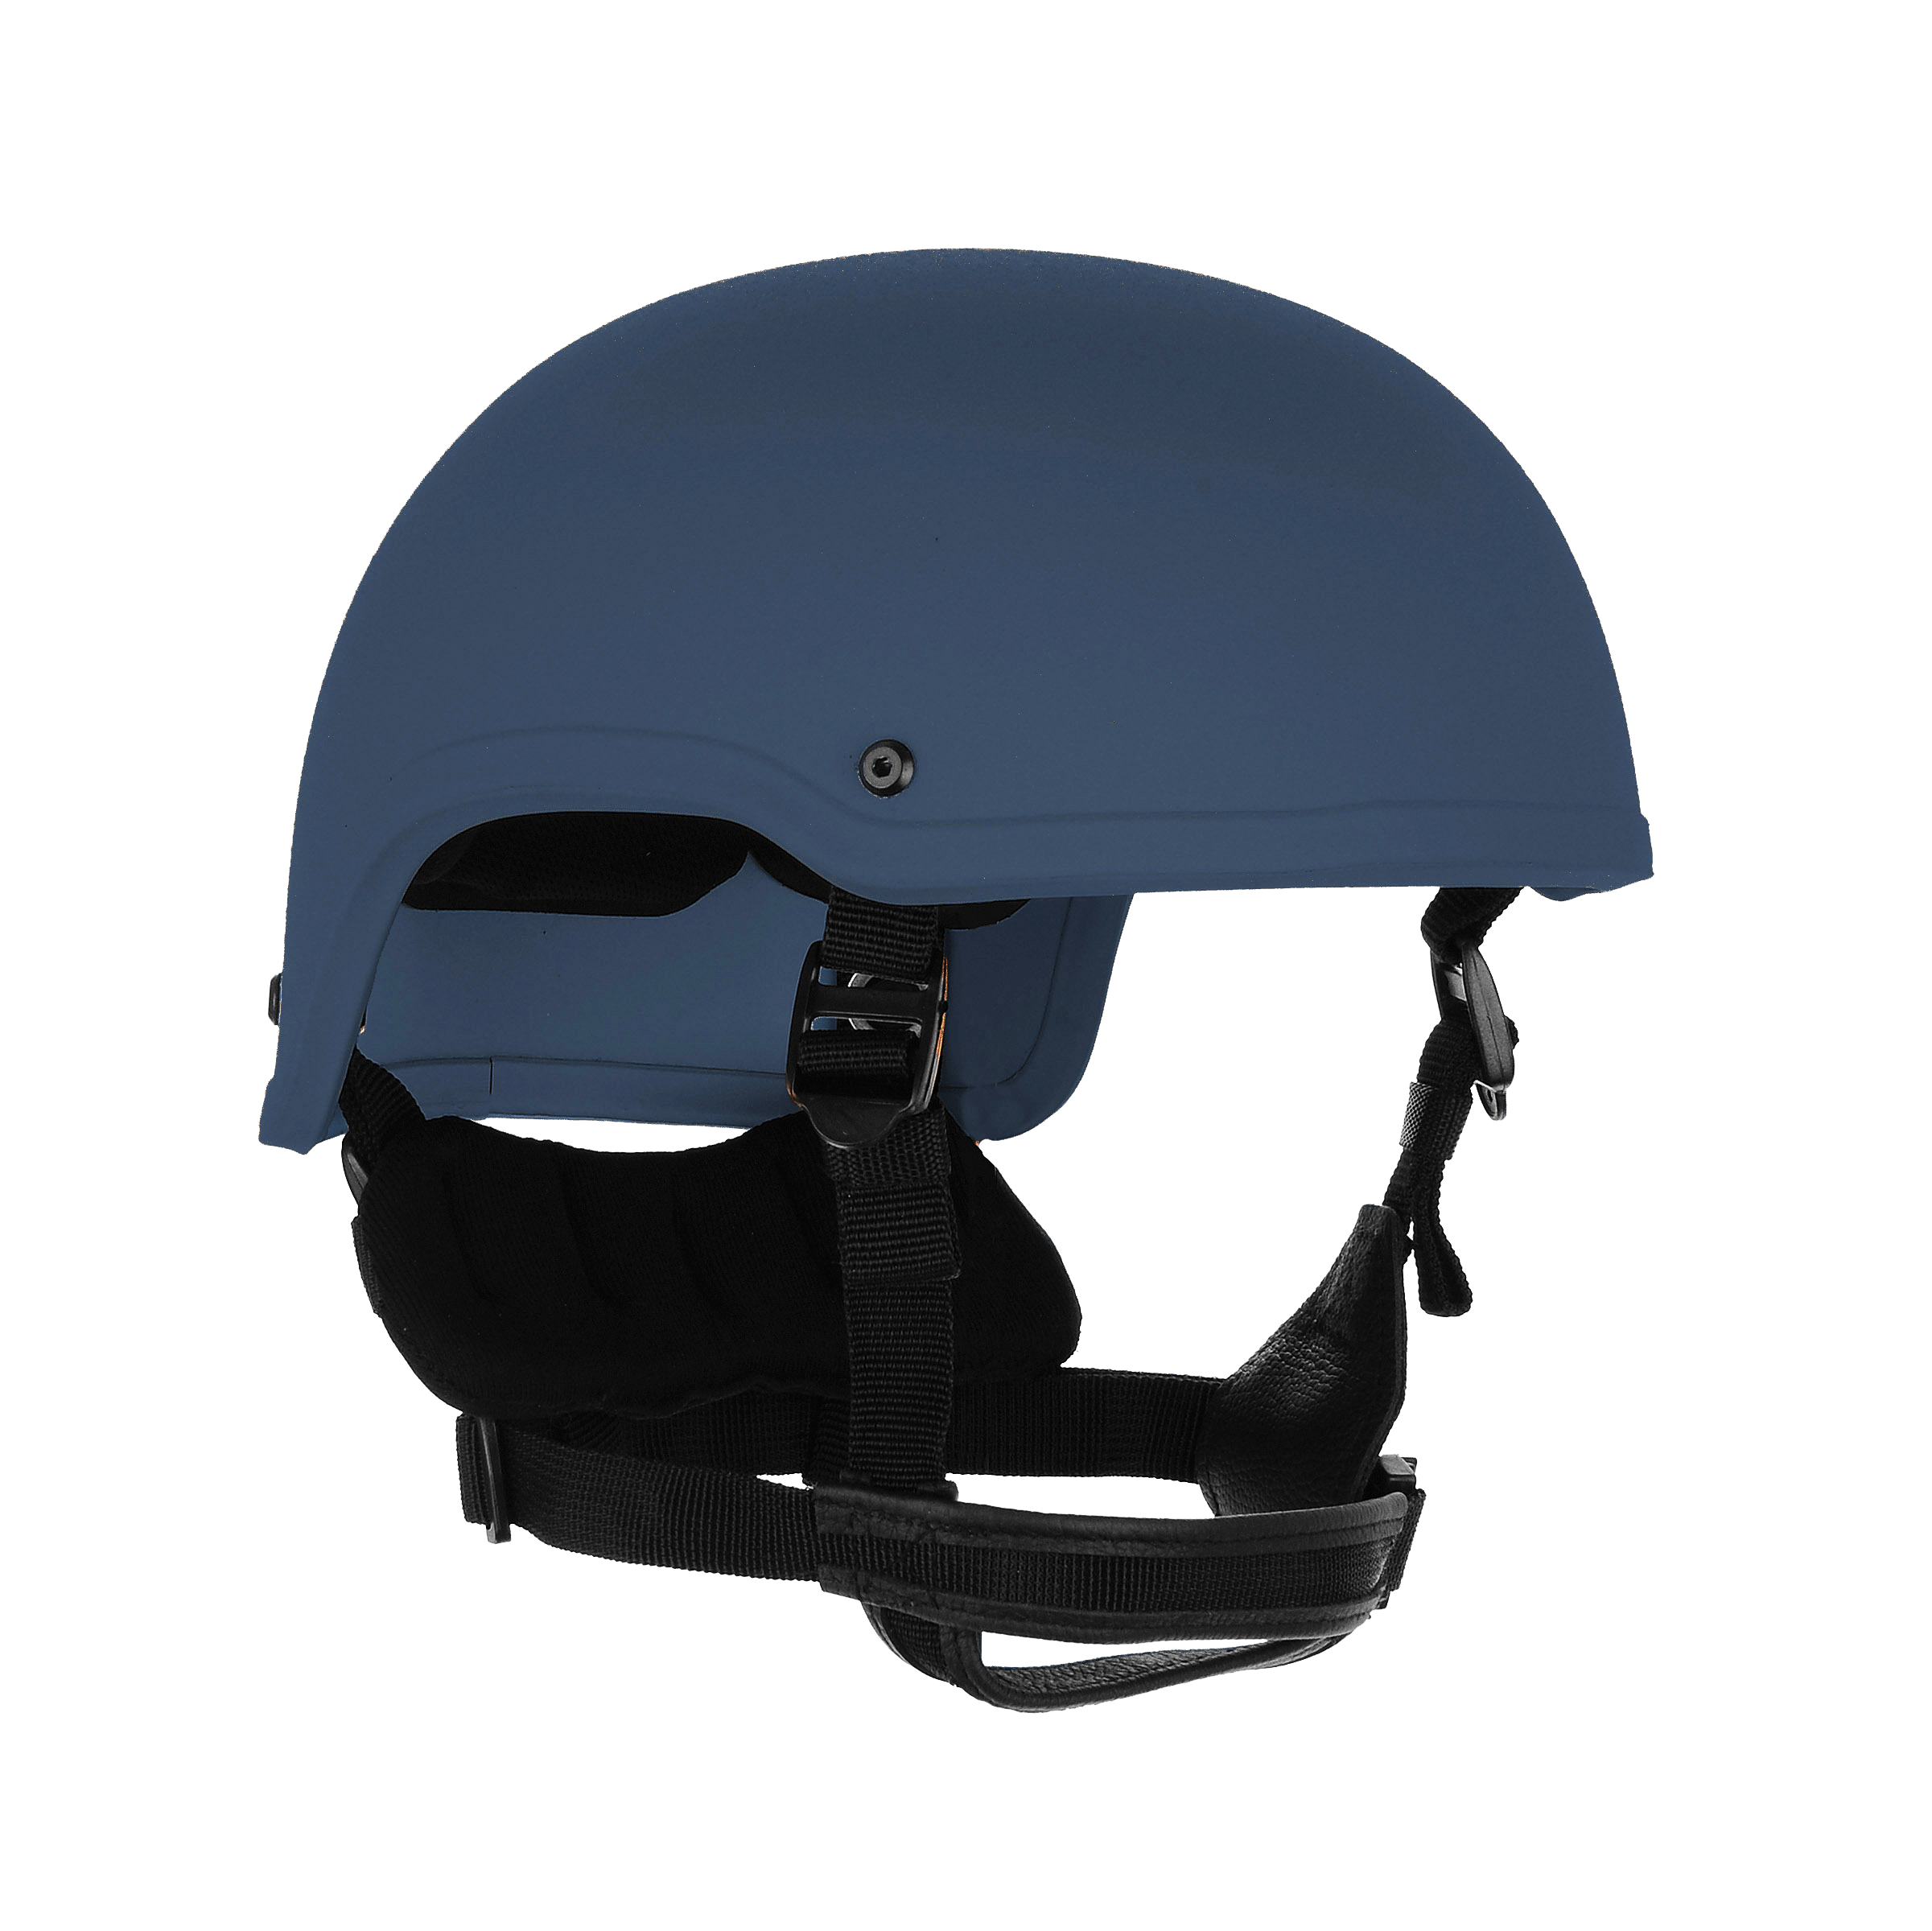 Level 3 helmet png. Chase tactical striker ach